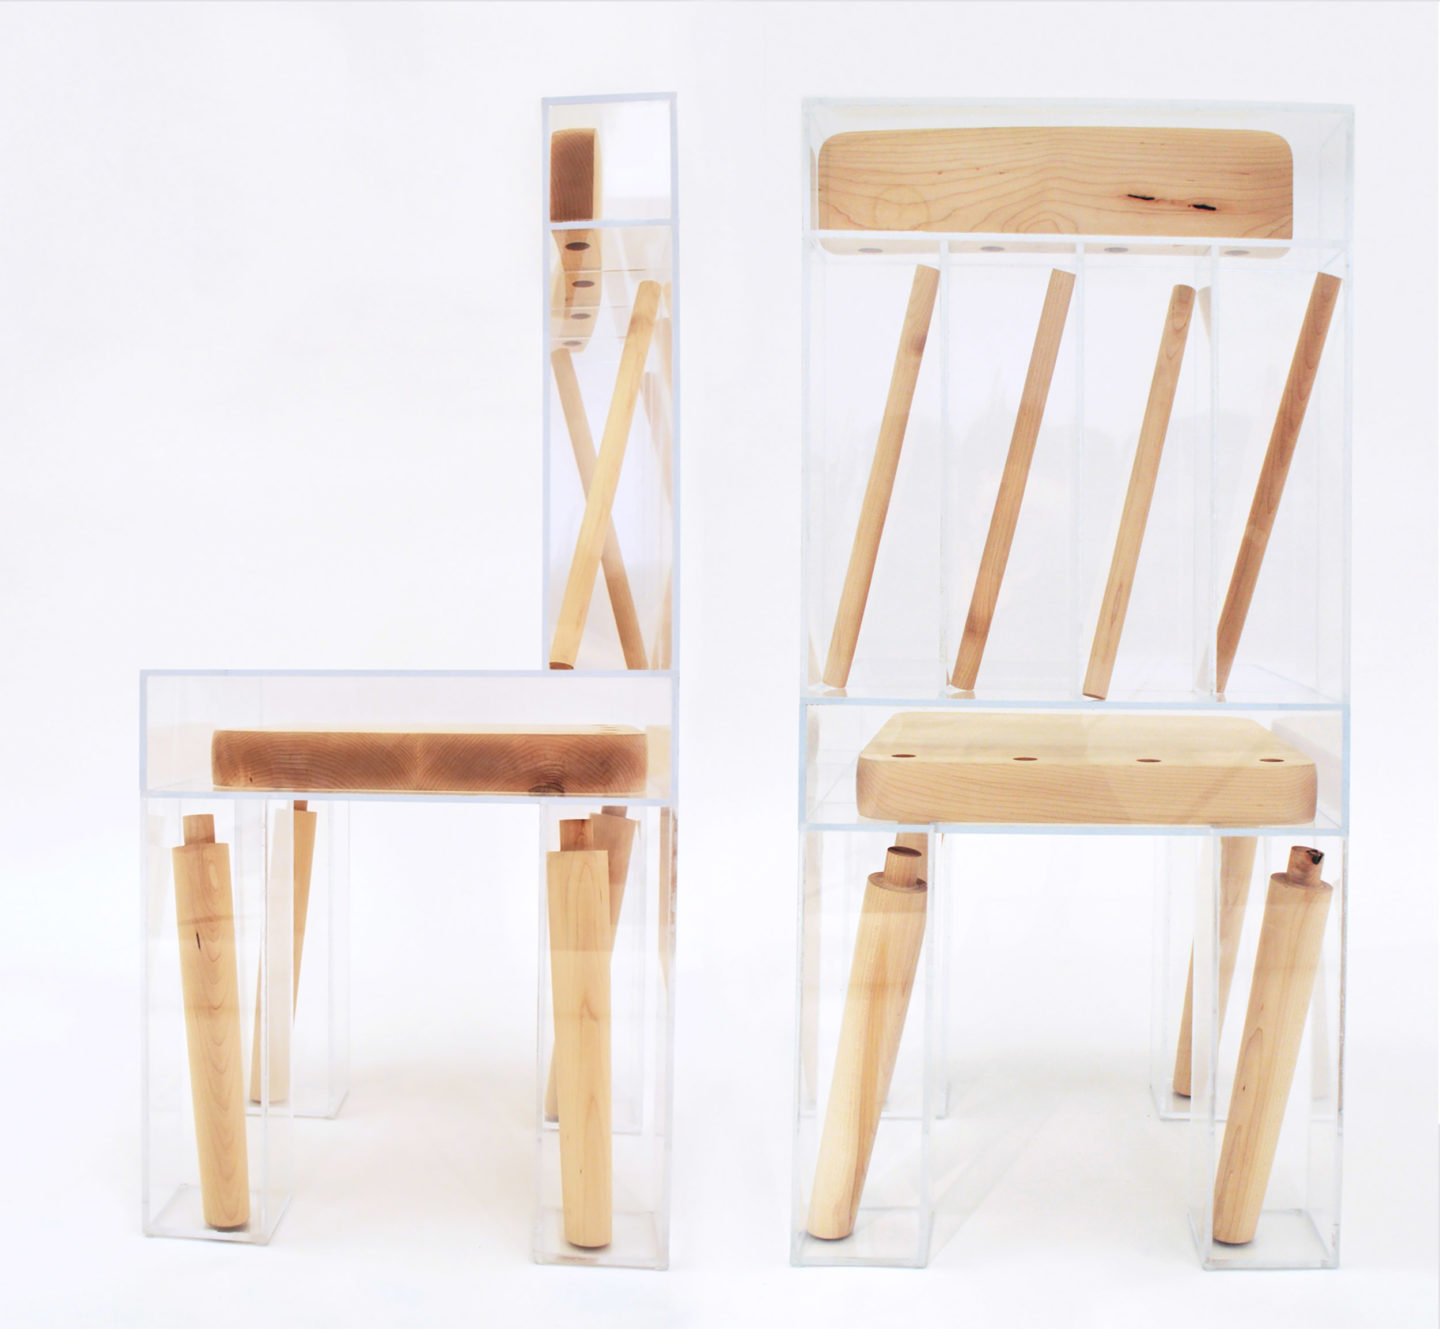 iGNANT-Design-Joyce-Lin-Exploded-Chair-002